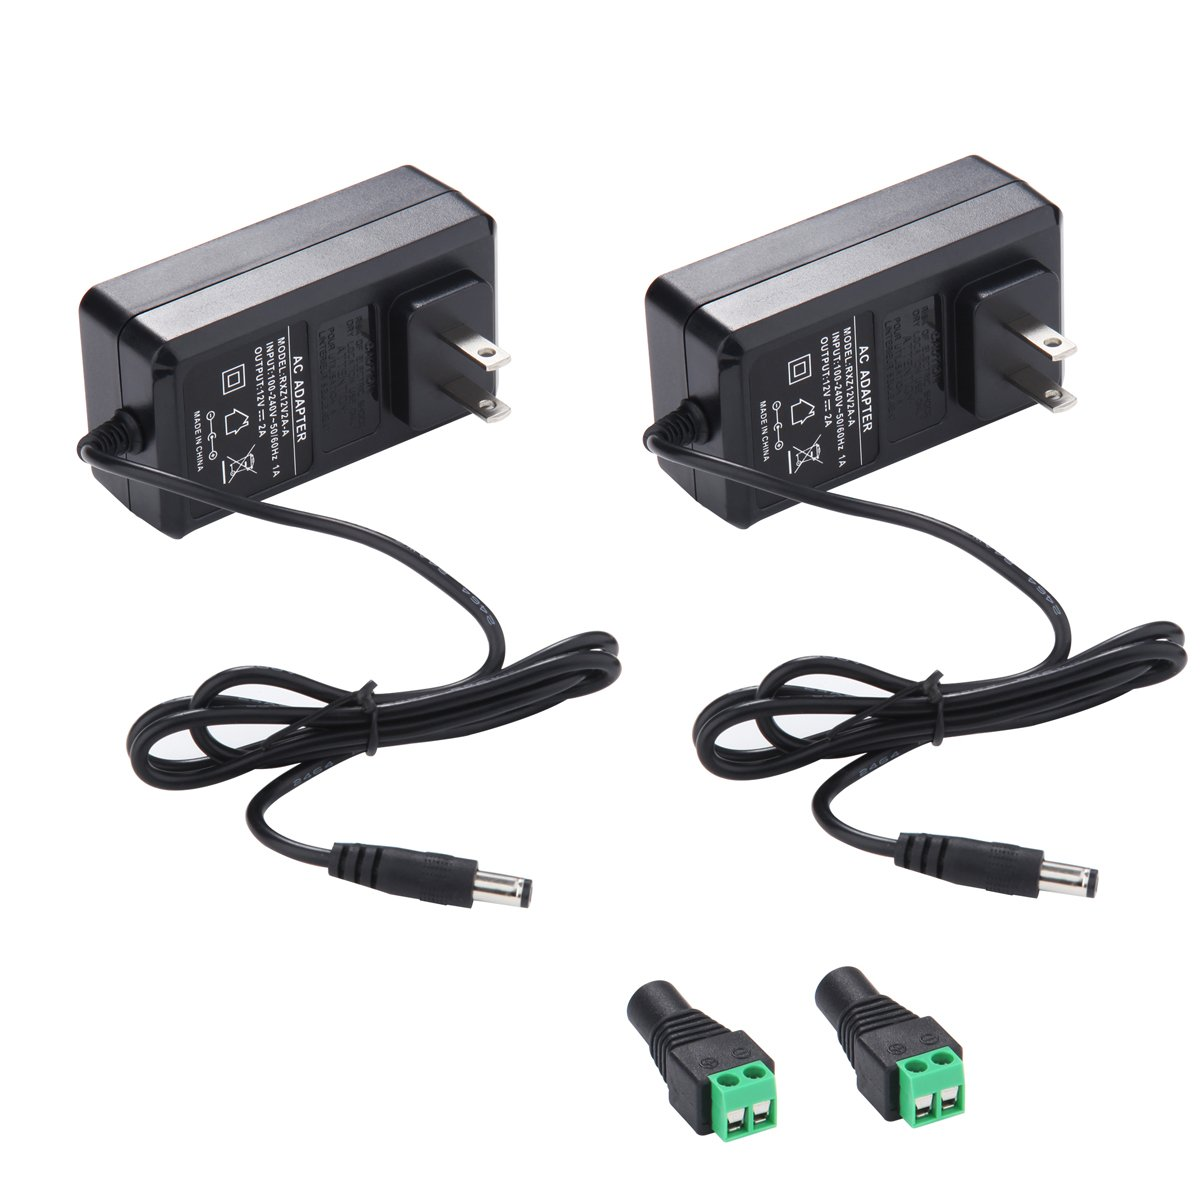 12V 2A Power Supply AC Adapter 2 Pack, AC 100-240V to 12V Transformers, 12 Volt DC Switching Power Supply for 3528 Led Strip Lights, CCTV Camera and Other 12 V Applications with DC Connectors Free